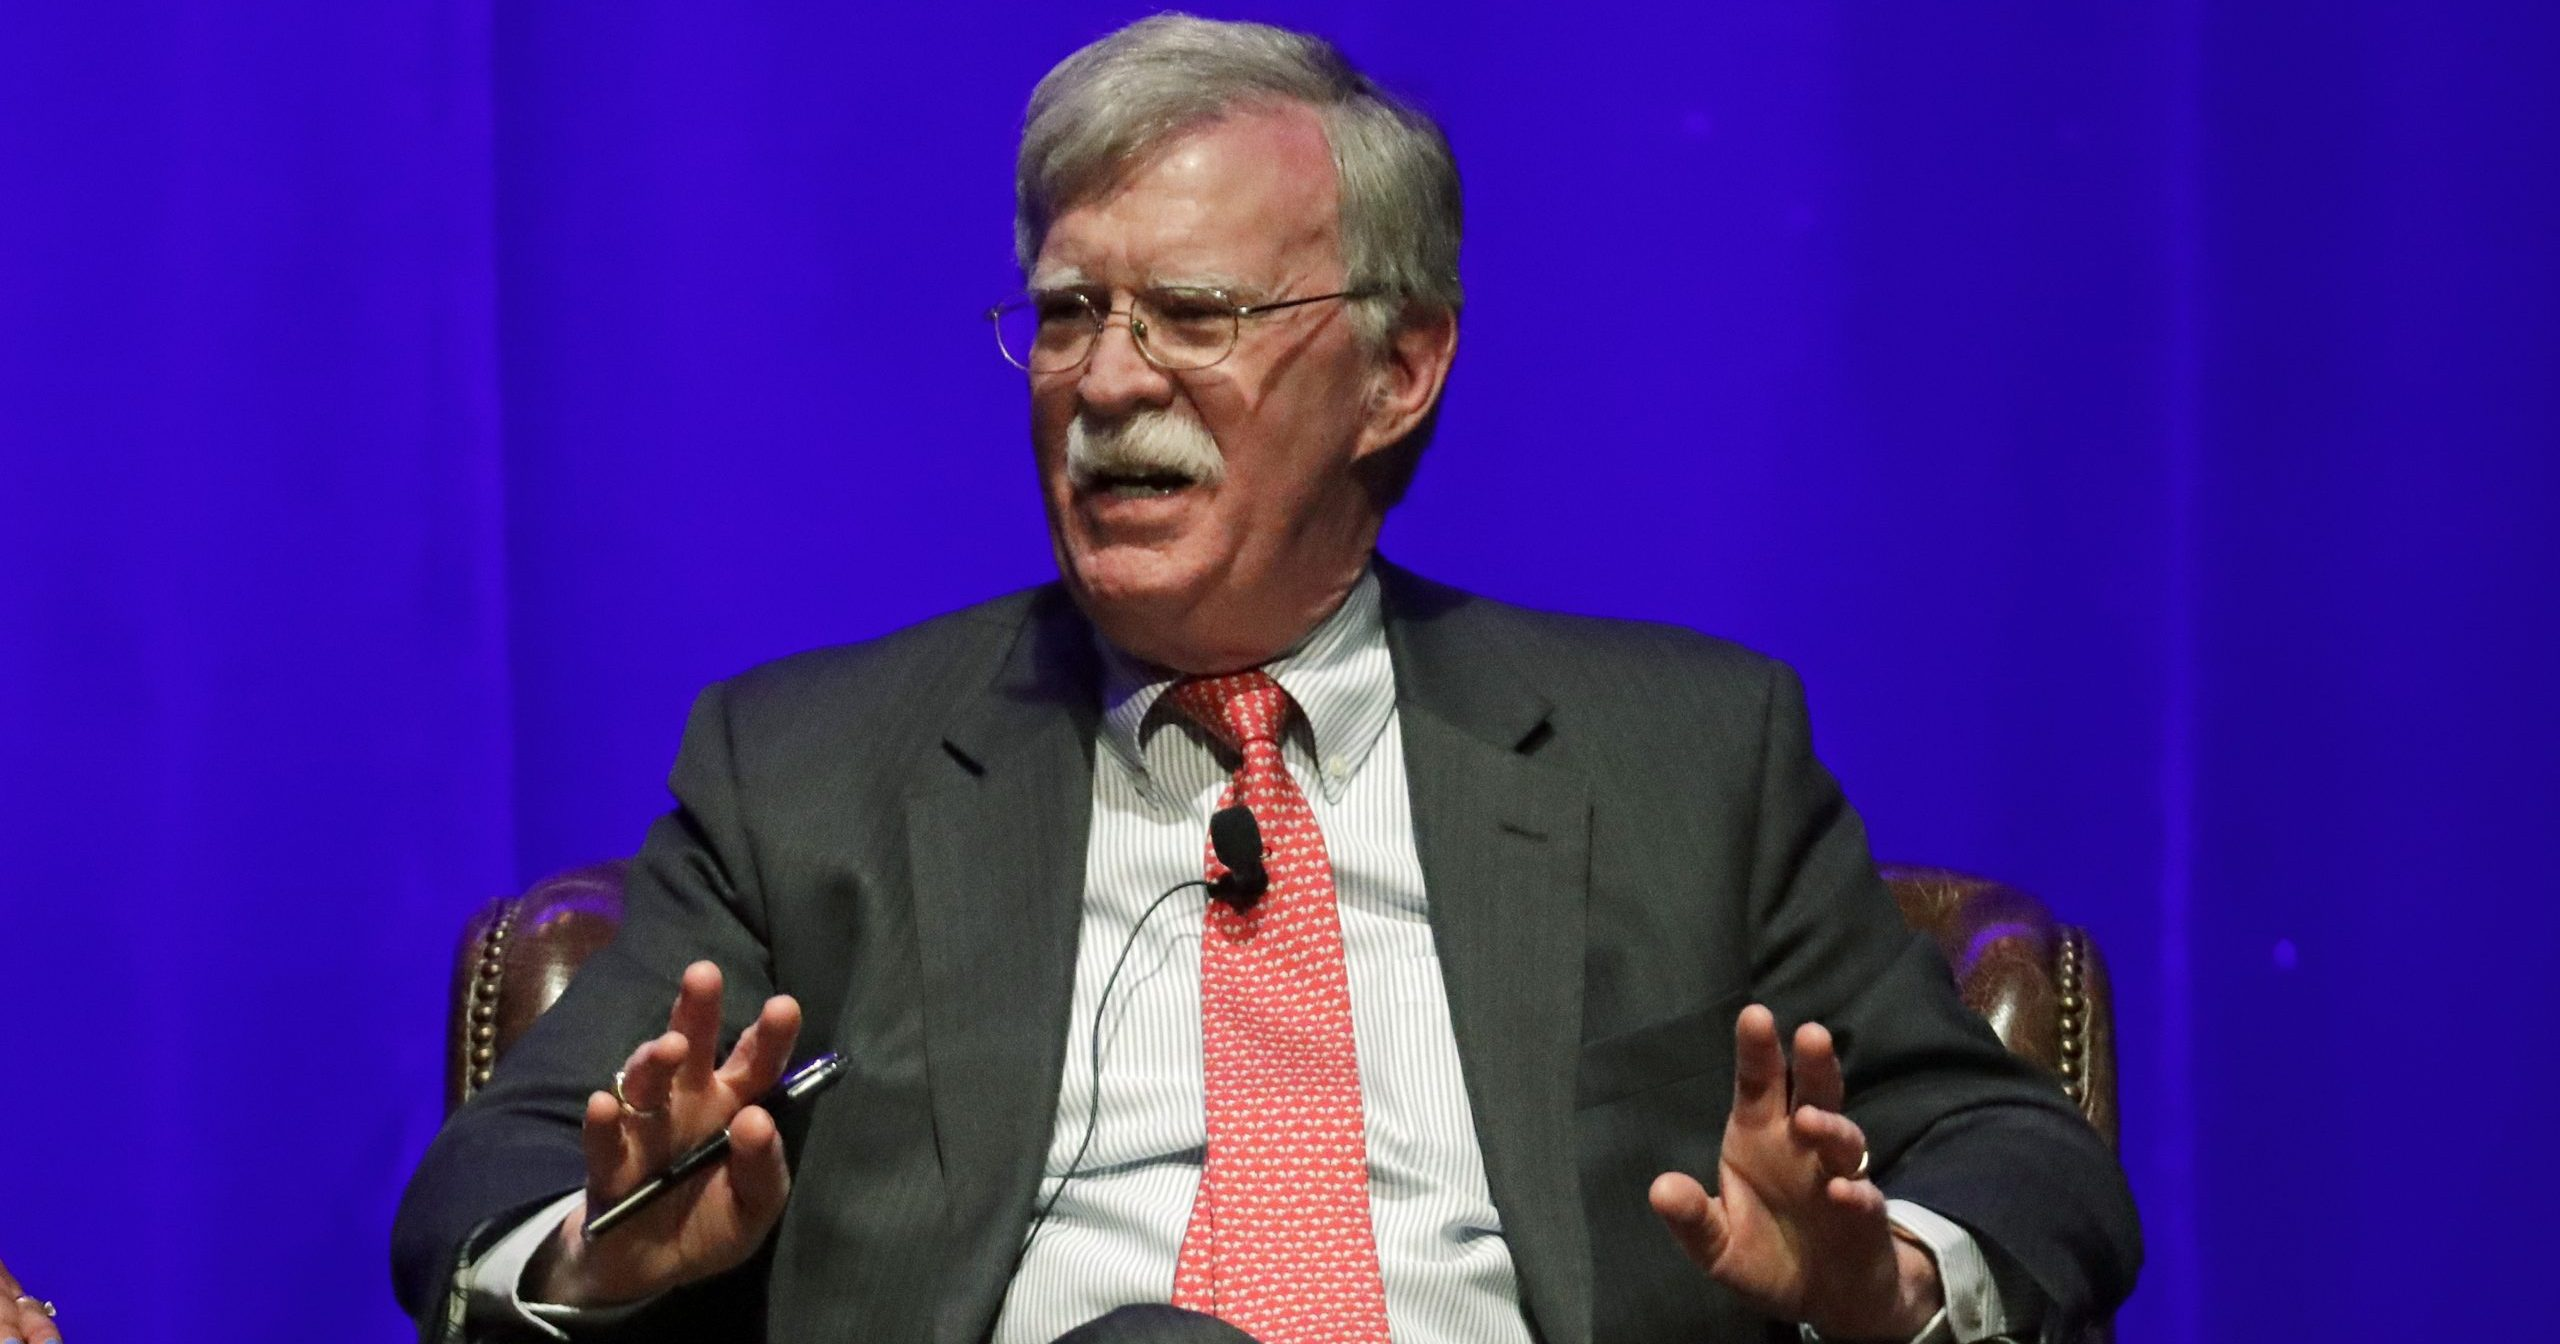 In this Feb. 19, 2020, file photo, former national security adviser John Bolton takes part in a discussion on global leadership at Vanderbilt University in Nashville, Tennessee. An attorney for Bolton said June 10 that President Donald Trump is trying to stop publication of the former official's forthcoming memoir after White House lawyers this week raised concerns that the book contains classified material that presents a national security threat.